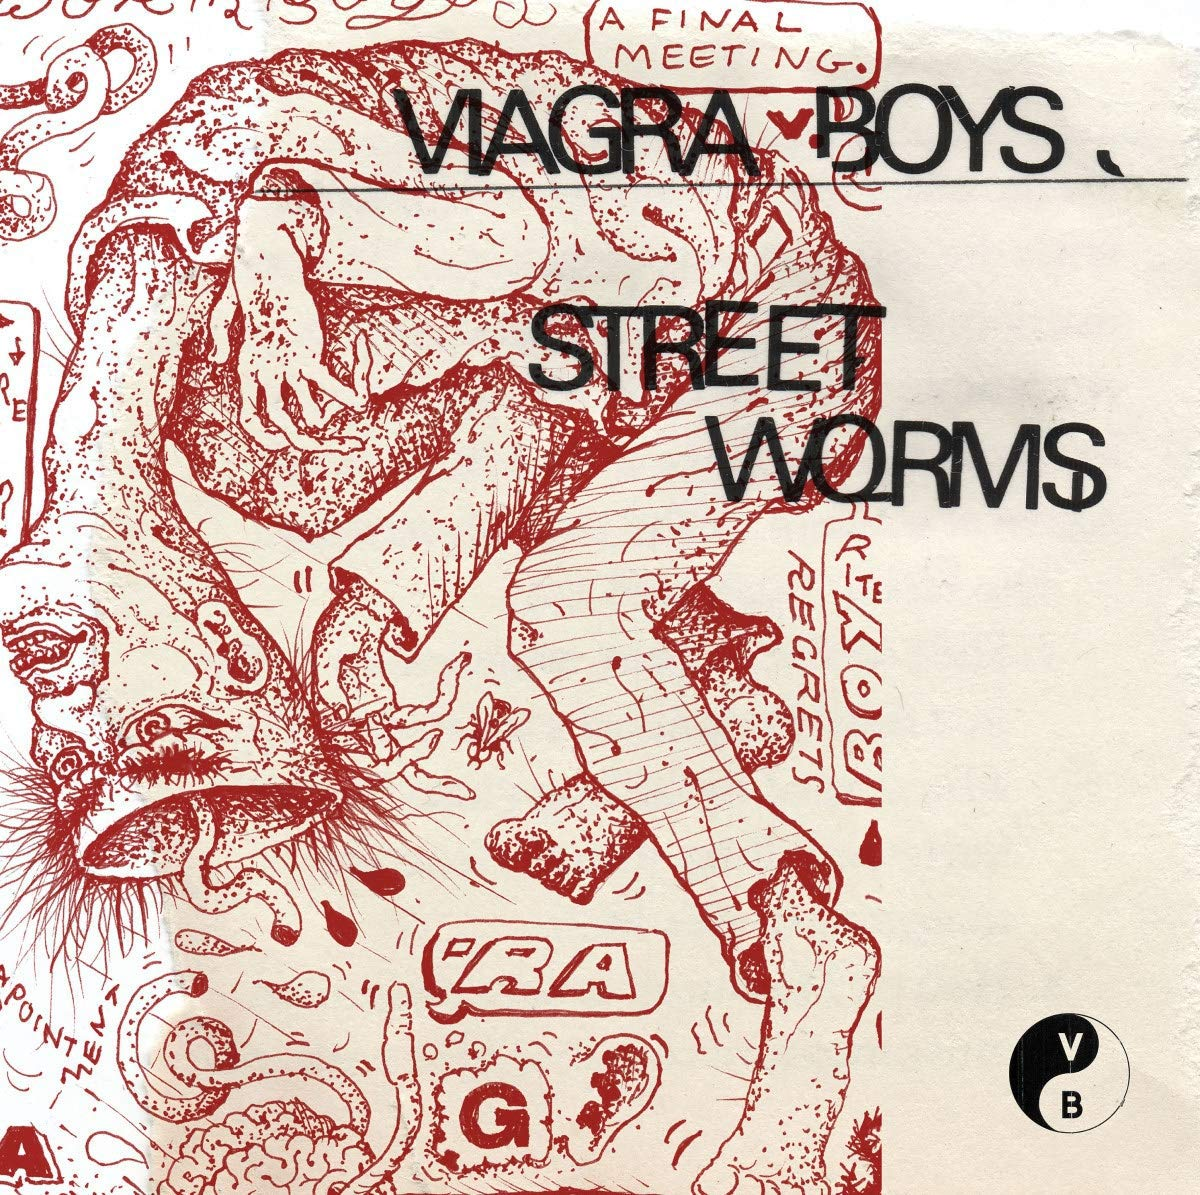 Viagra Boys - Street Worms [Deluxe Edition]